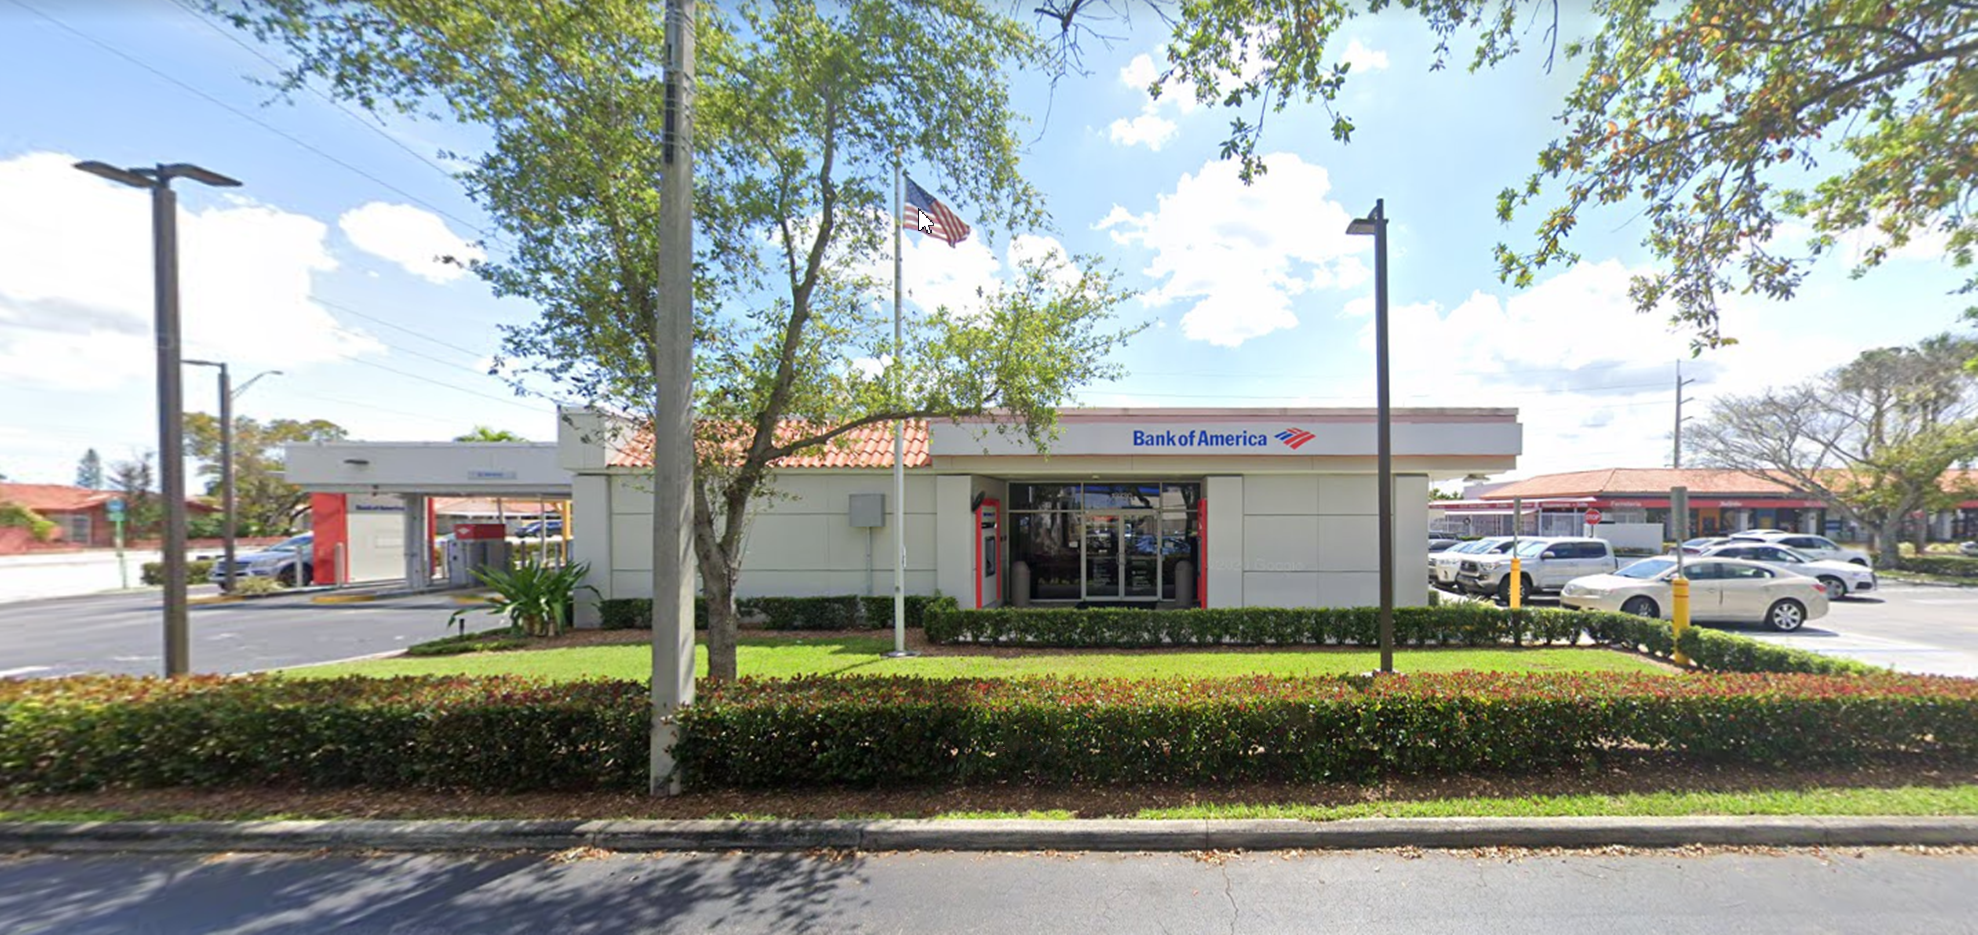 Bank of America financial center with drive-thru ATM and teller | 13730 SW 8th St, Miami, FL 33184